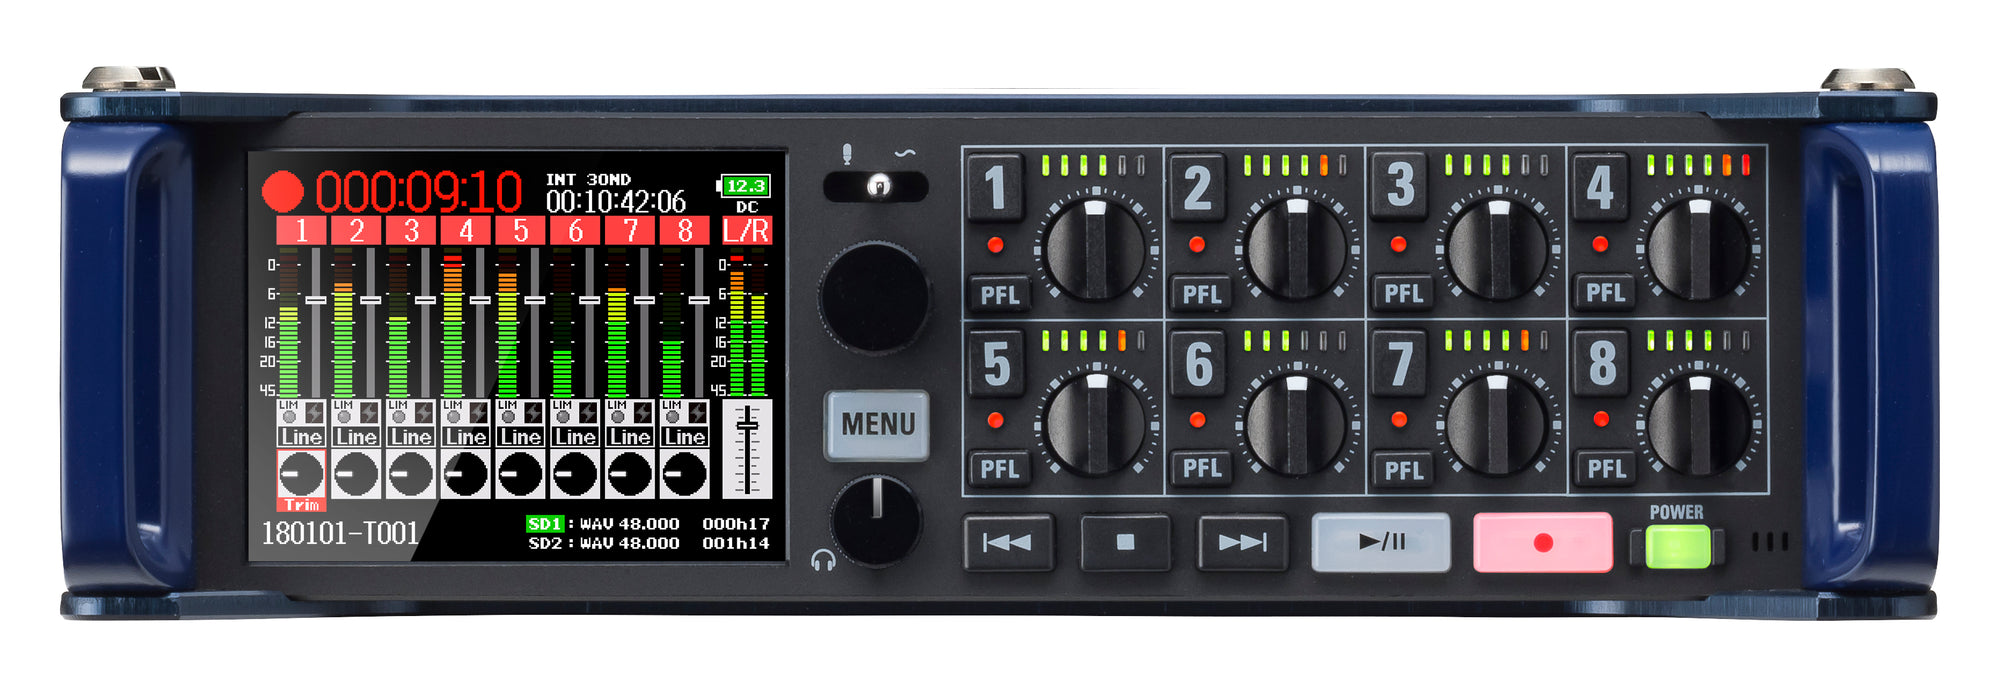 Zoom F8n Professional Field Recorder/Mixer, Audio for Video, 24-bit/192 kHz Recording, 10 Channel Recorder, 8 XLR/TRS Inputs, Timecode, Ambisonics Mode, Battery Powered, Dual SD Card Slots - 305broadcast